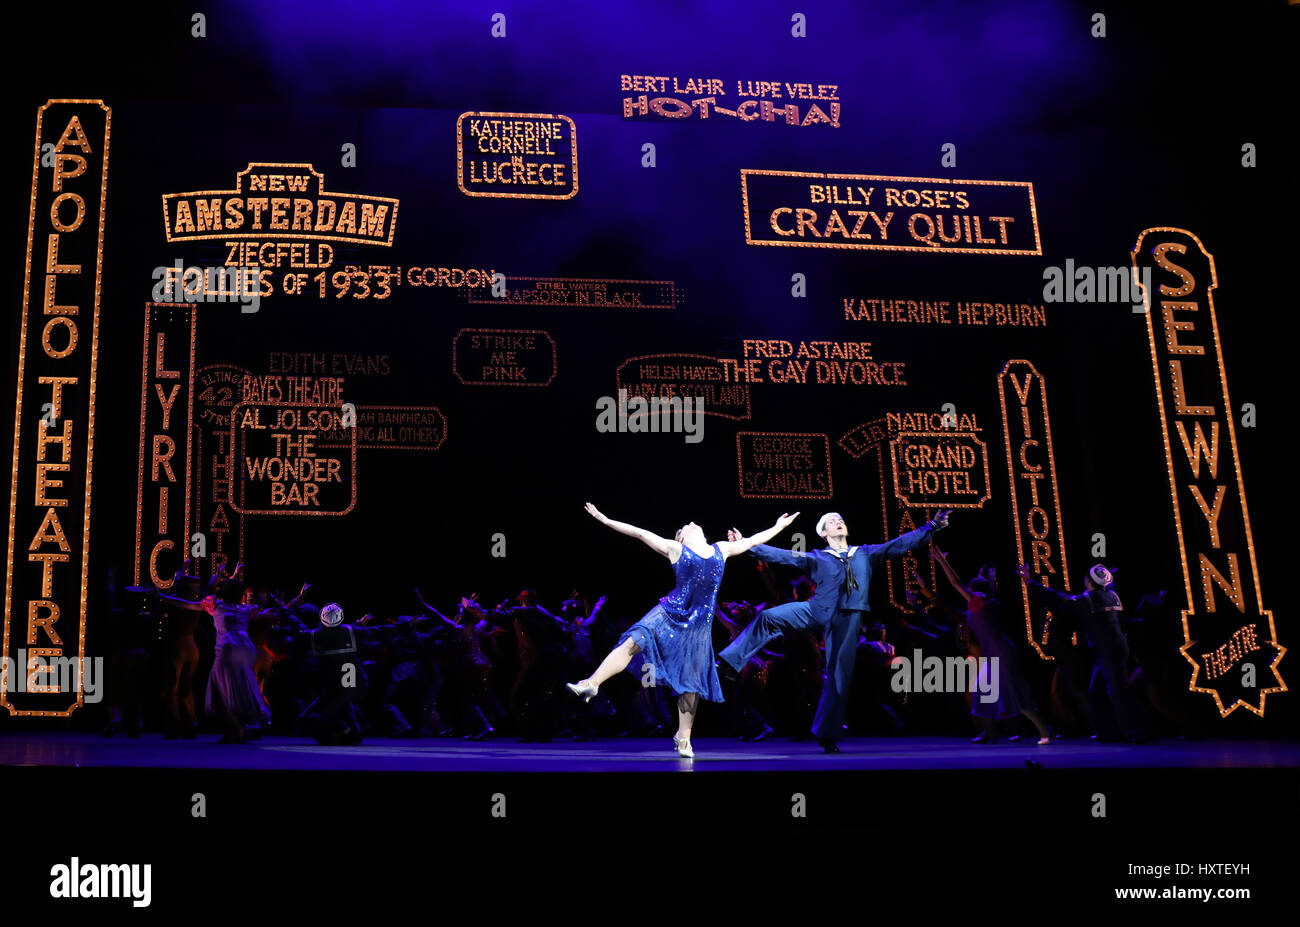 London, UK. 30th Mar, 2017. Pic shows: 42nd Street show at Theatre Royal Drury Lane starring Stuart Neal as Billy - Stock Image